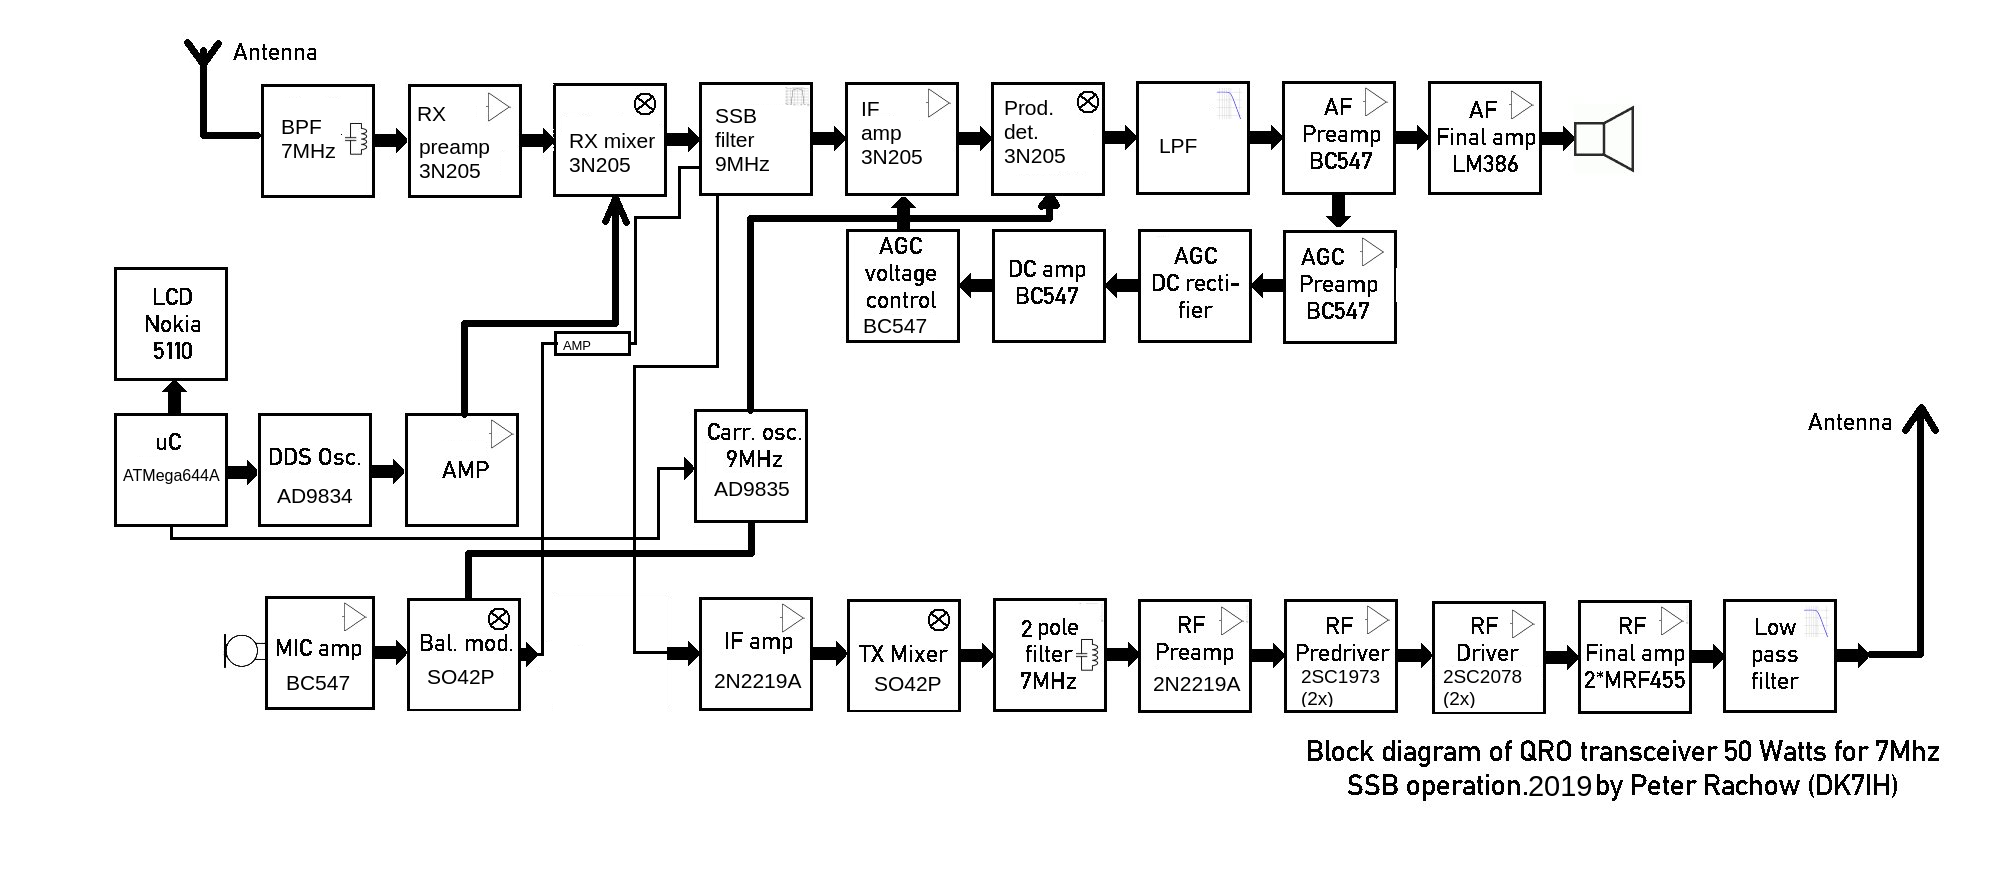 small resolution of peter rachow amateur radio engineering projects peter rachow dk7ih fig 416 block diagram of ssb transmitter